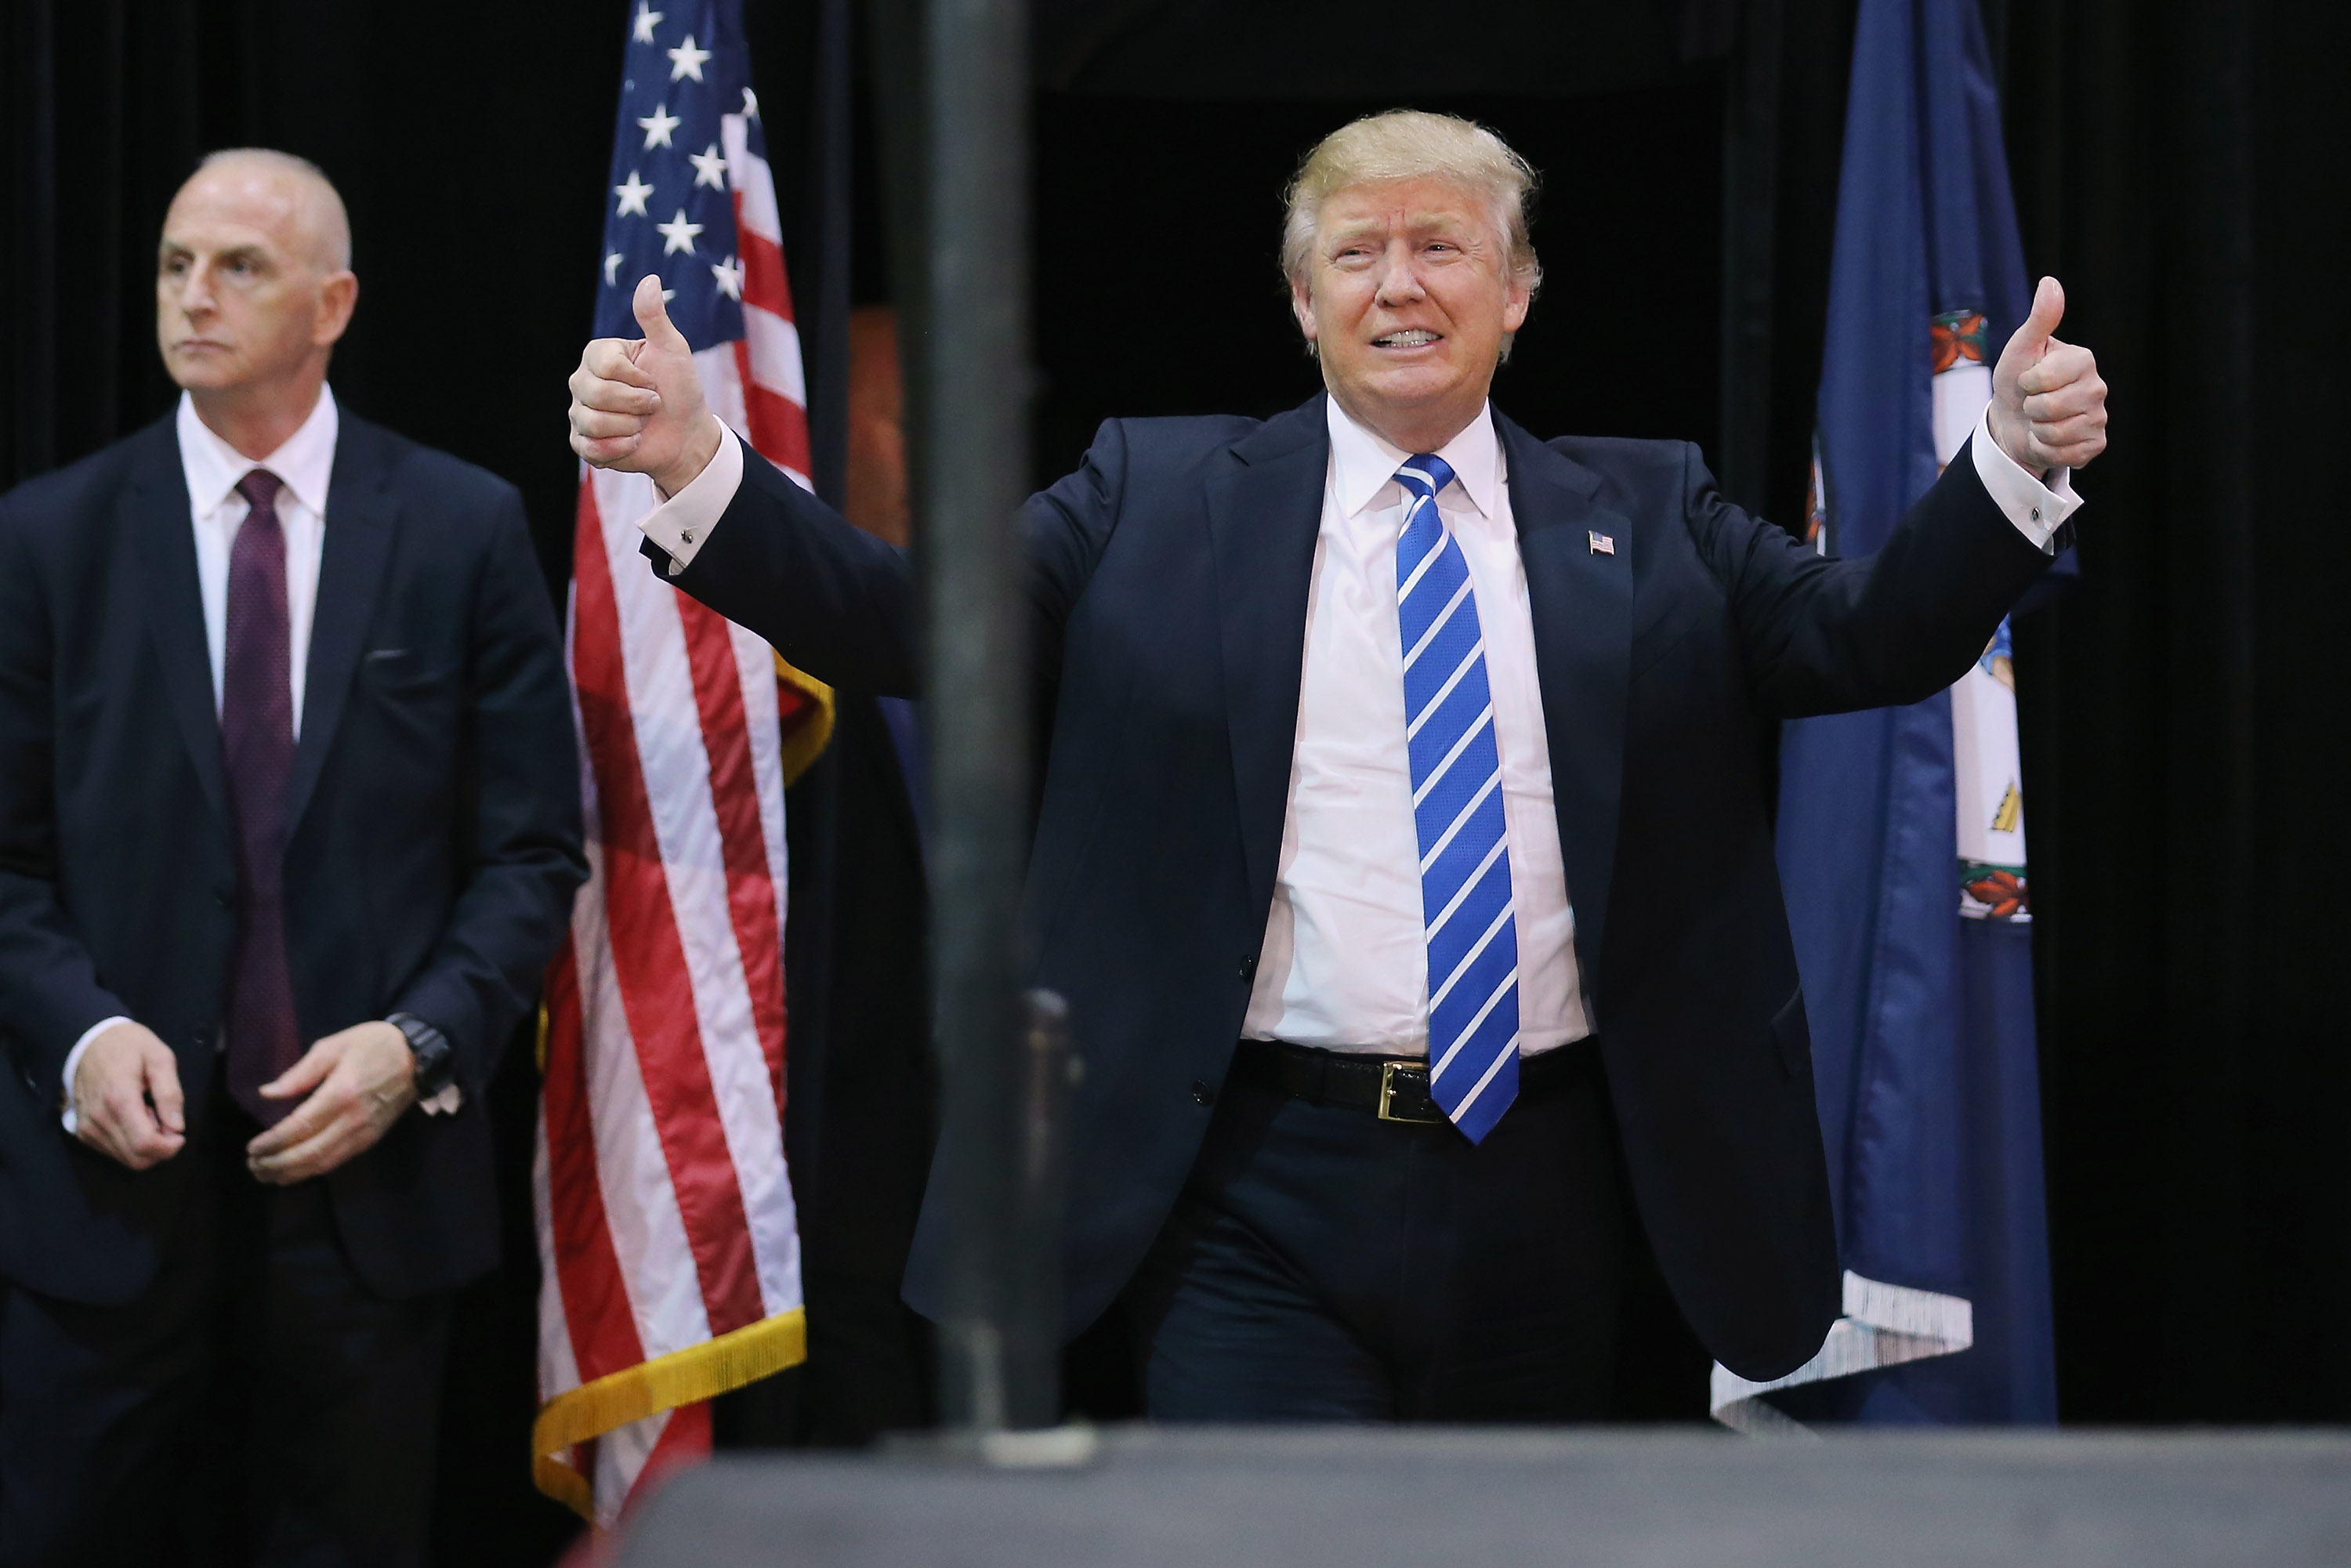 Republican presidential candidate and front-runner Donald Trump arrives at a campaign rally at the Richmond International Raceway October 14, 2015 in Richmond, Virginia. (Photo by Chip Somodevilla/Getty Images)